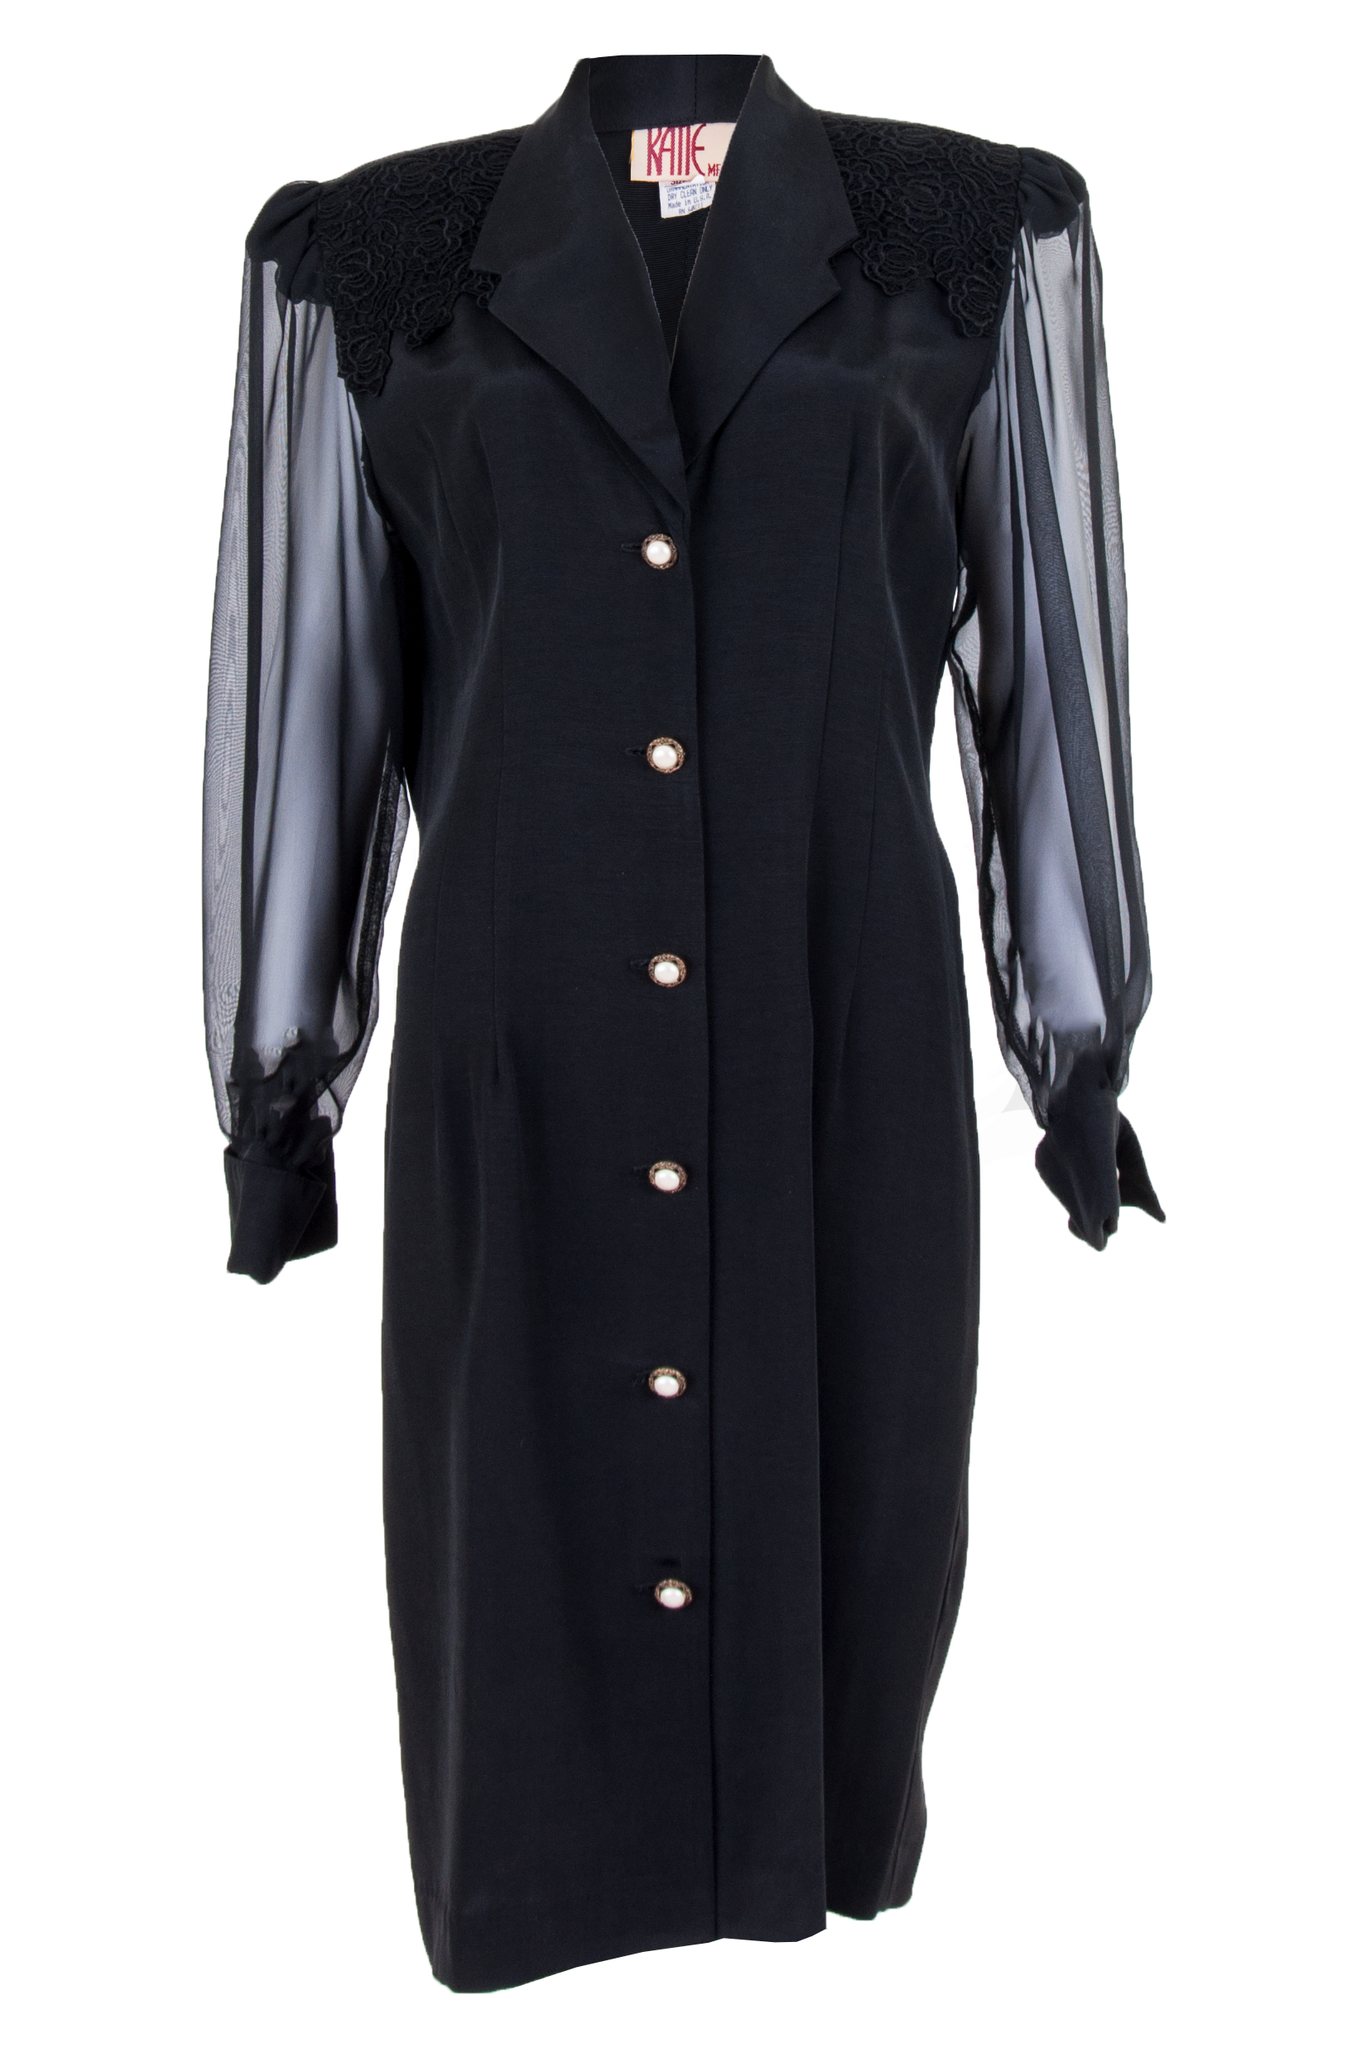 Vintage black dress with pearl buttons